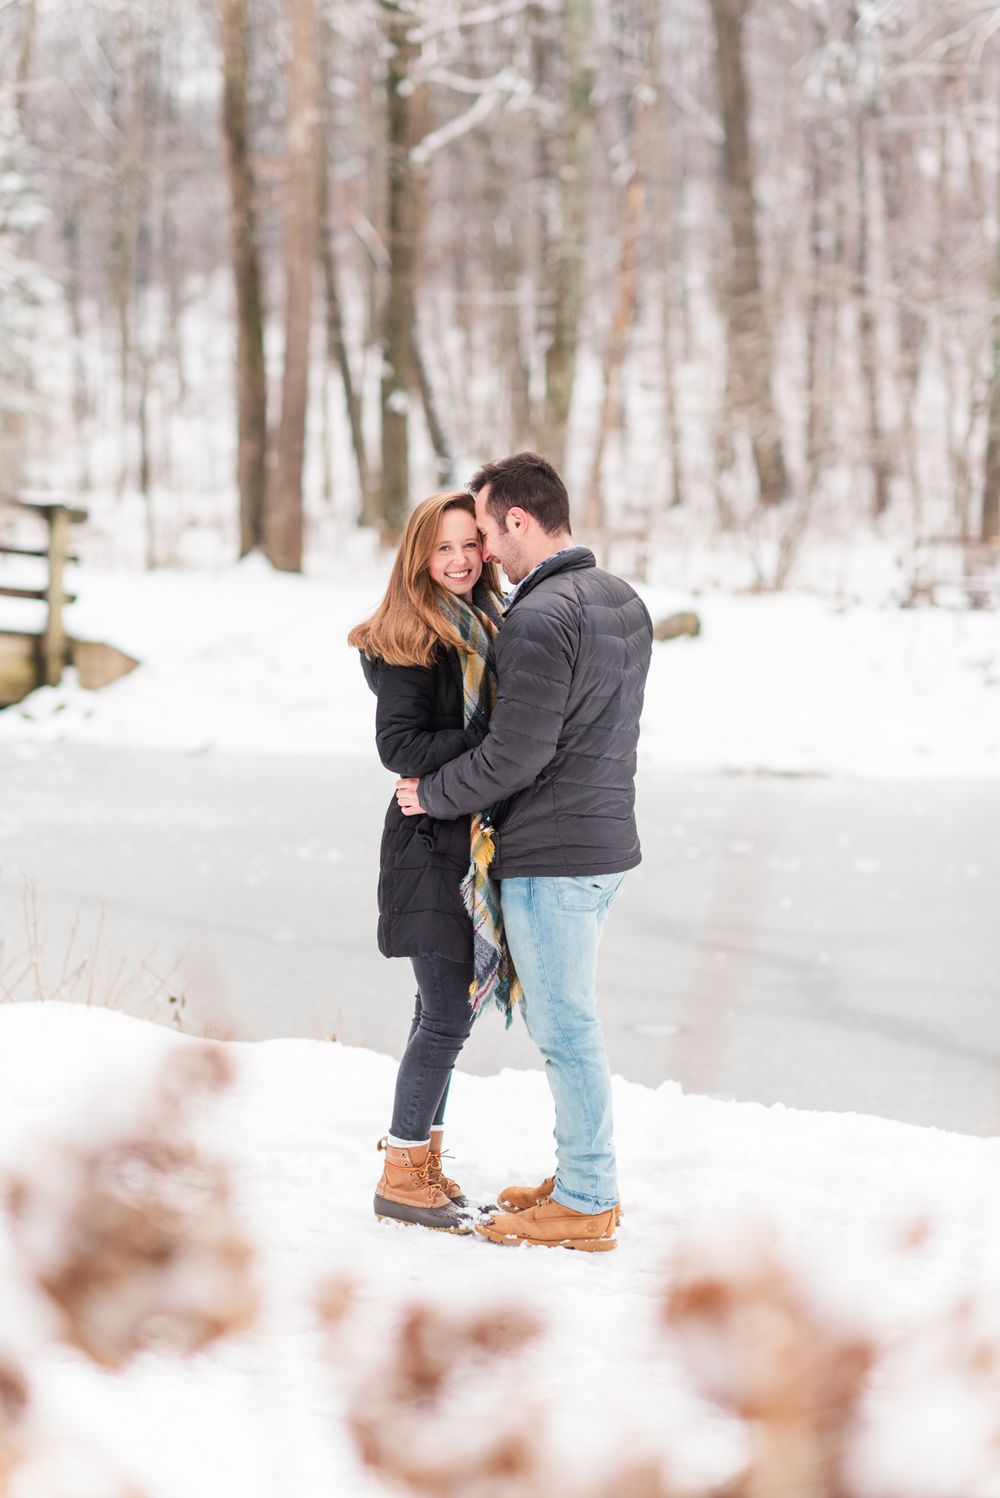 Winter and snow couple engagement in Harrisonburg VirginiaWinter and snow couple engagement in Harrisonburg Virginia